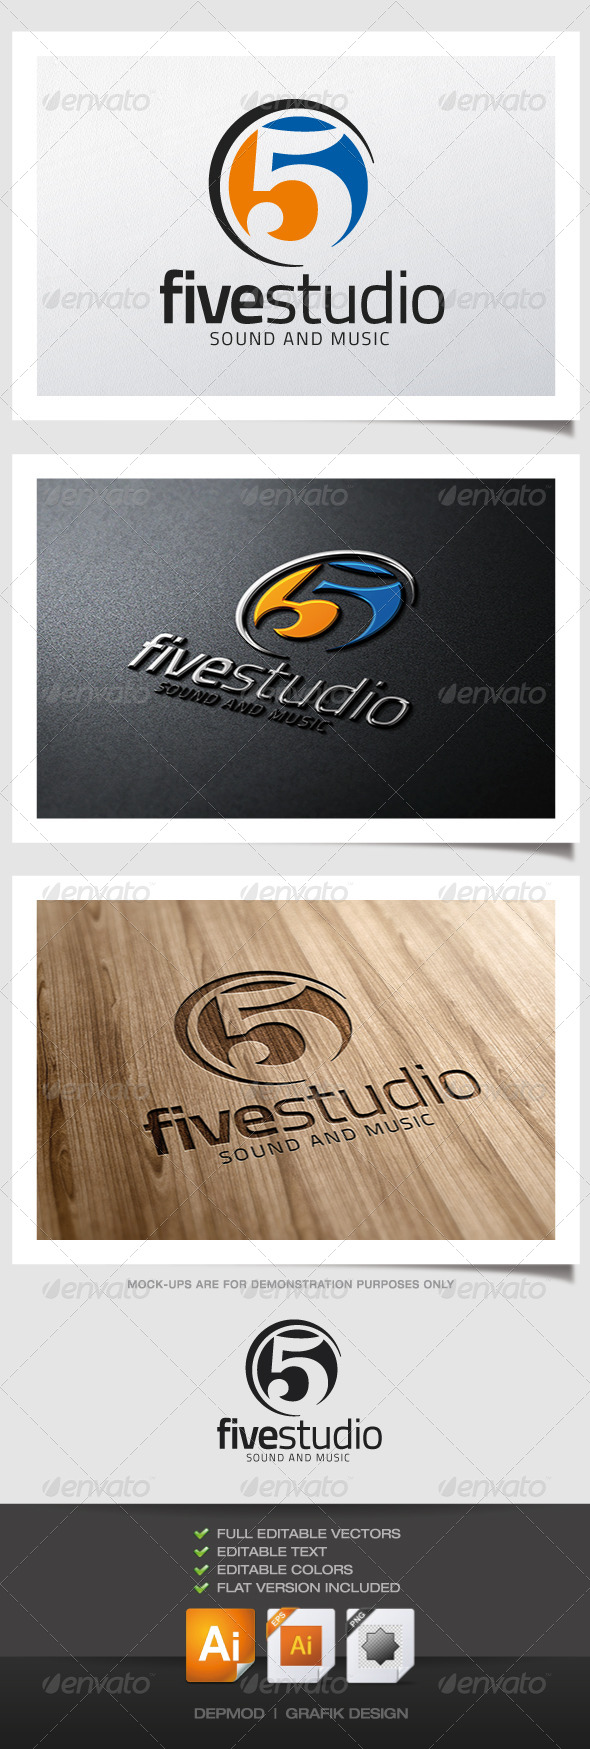 GraphicRiver Five Studio Logo 5074501